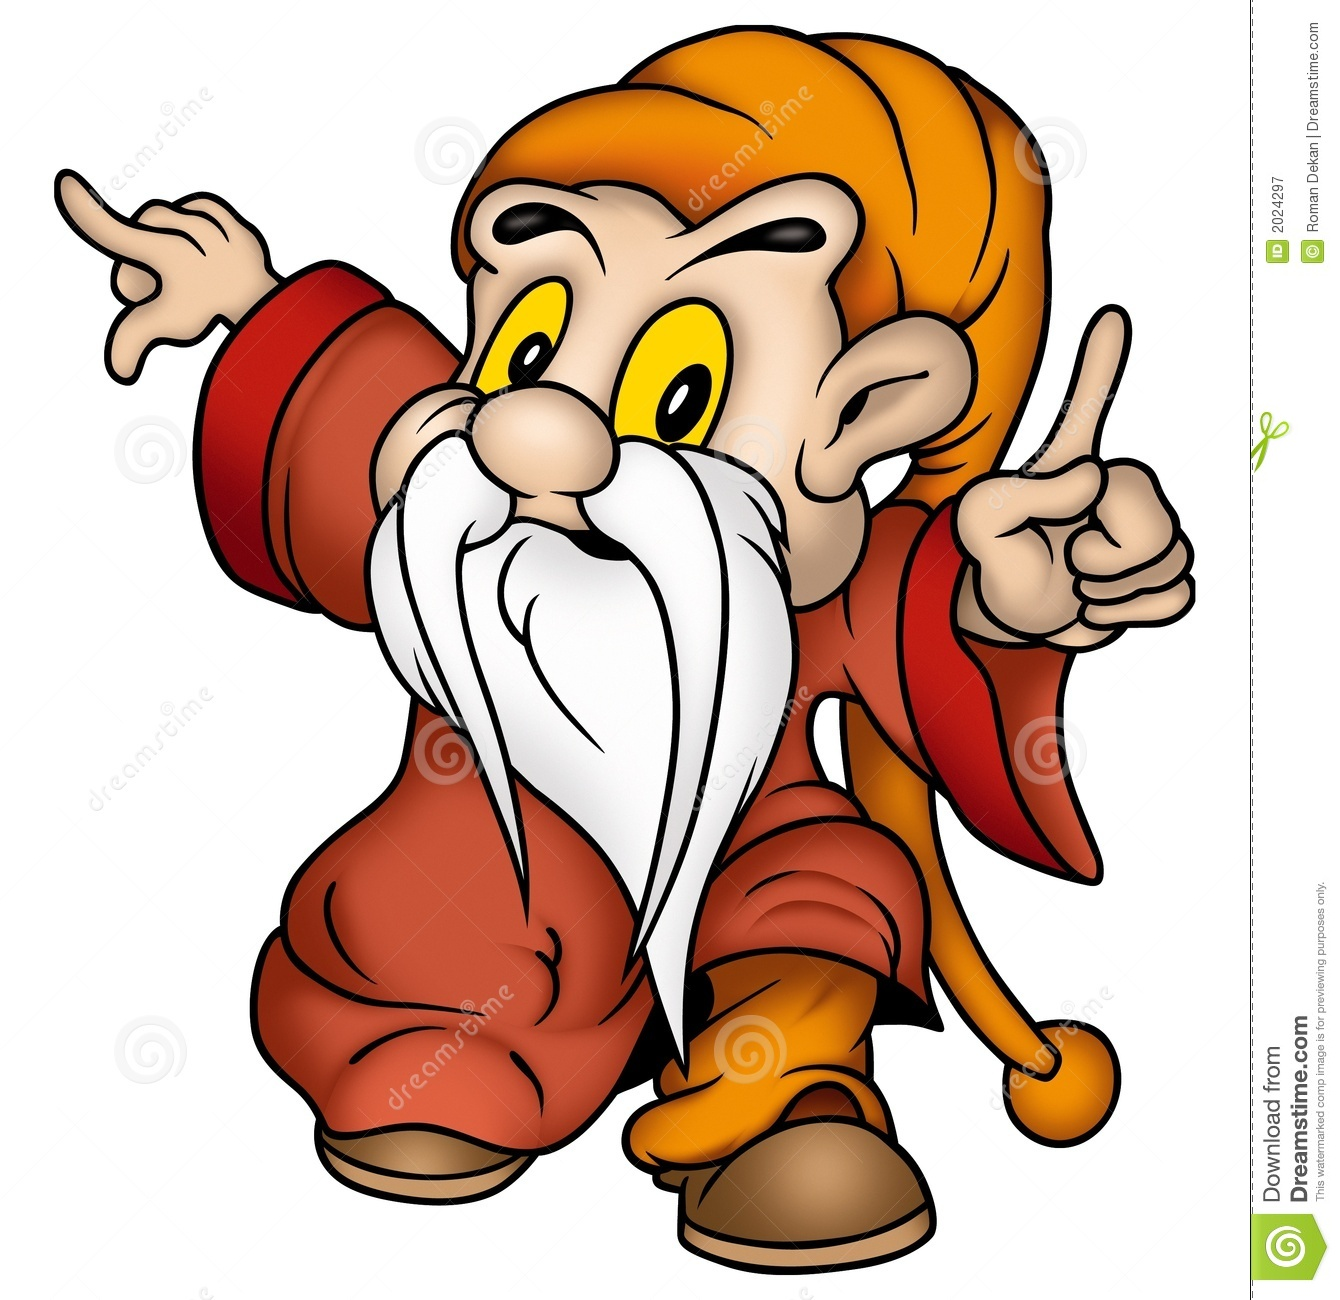 Gnome Clip Art: Gnome & Red Clothing Stock Illustration. Image Of Cartoons